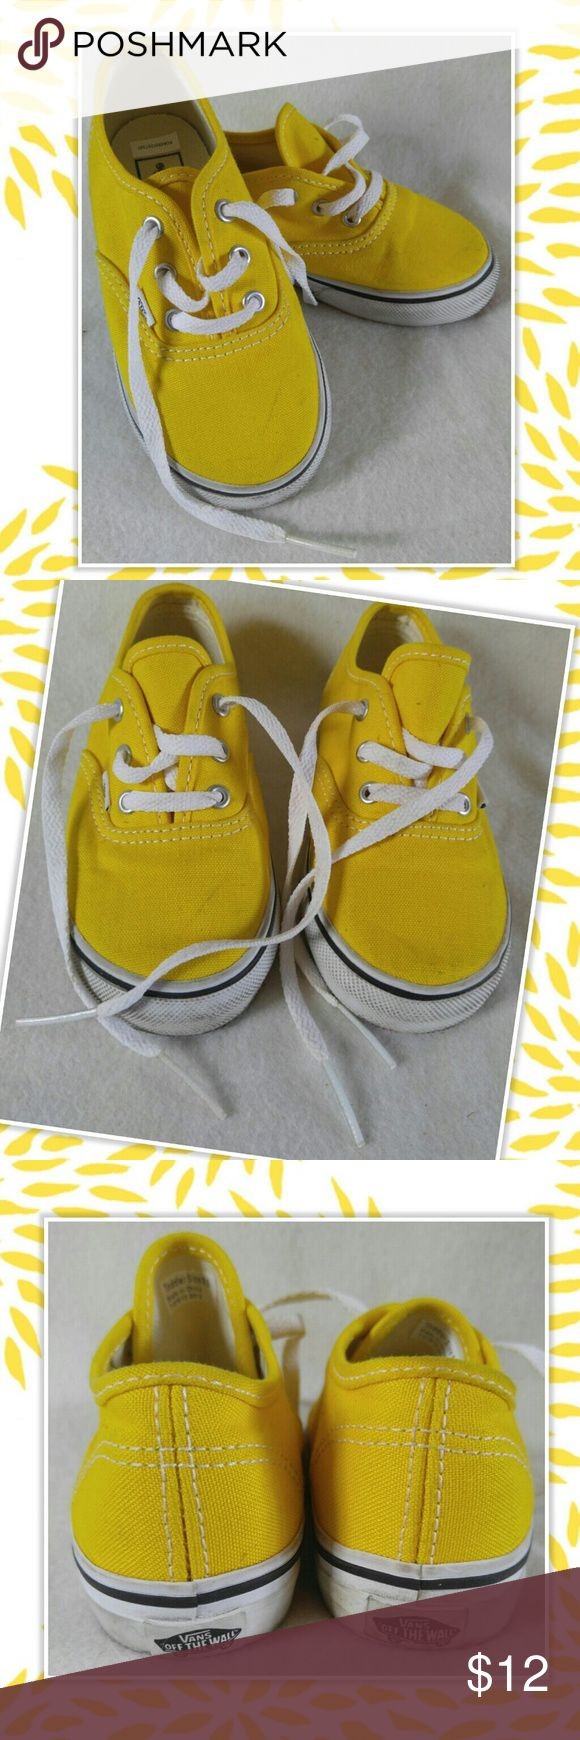 VANS Toddler Sneakers Lace-up Size VANS Toddler Sneakers Lace-up Size 8 Vans Shoes Sneakers